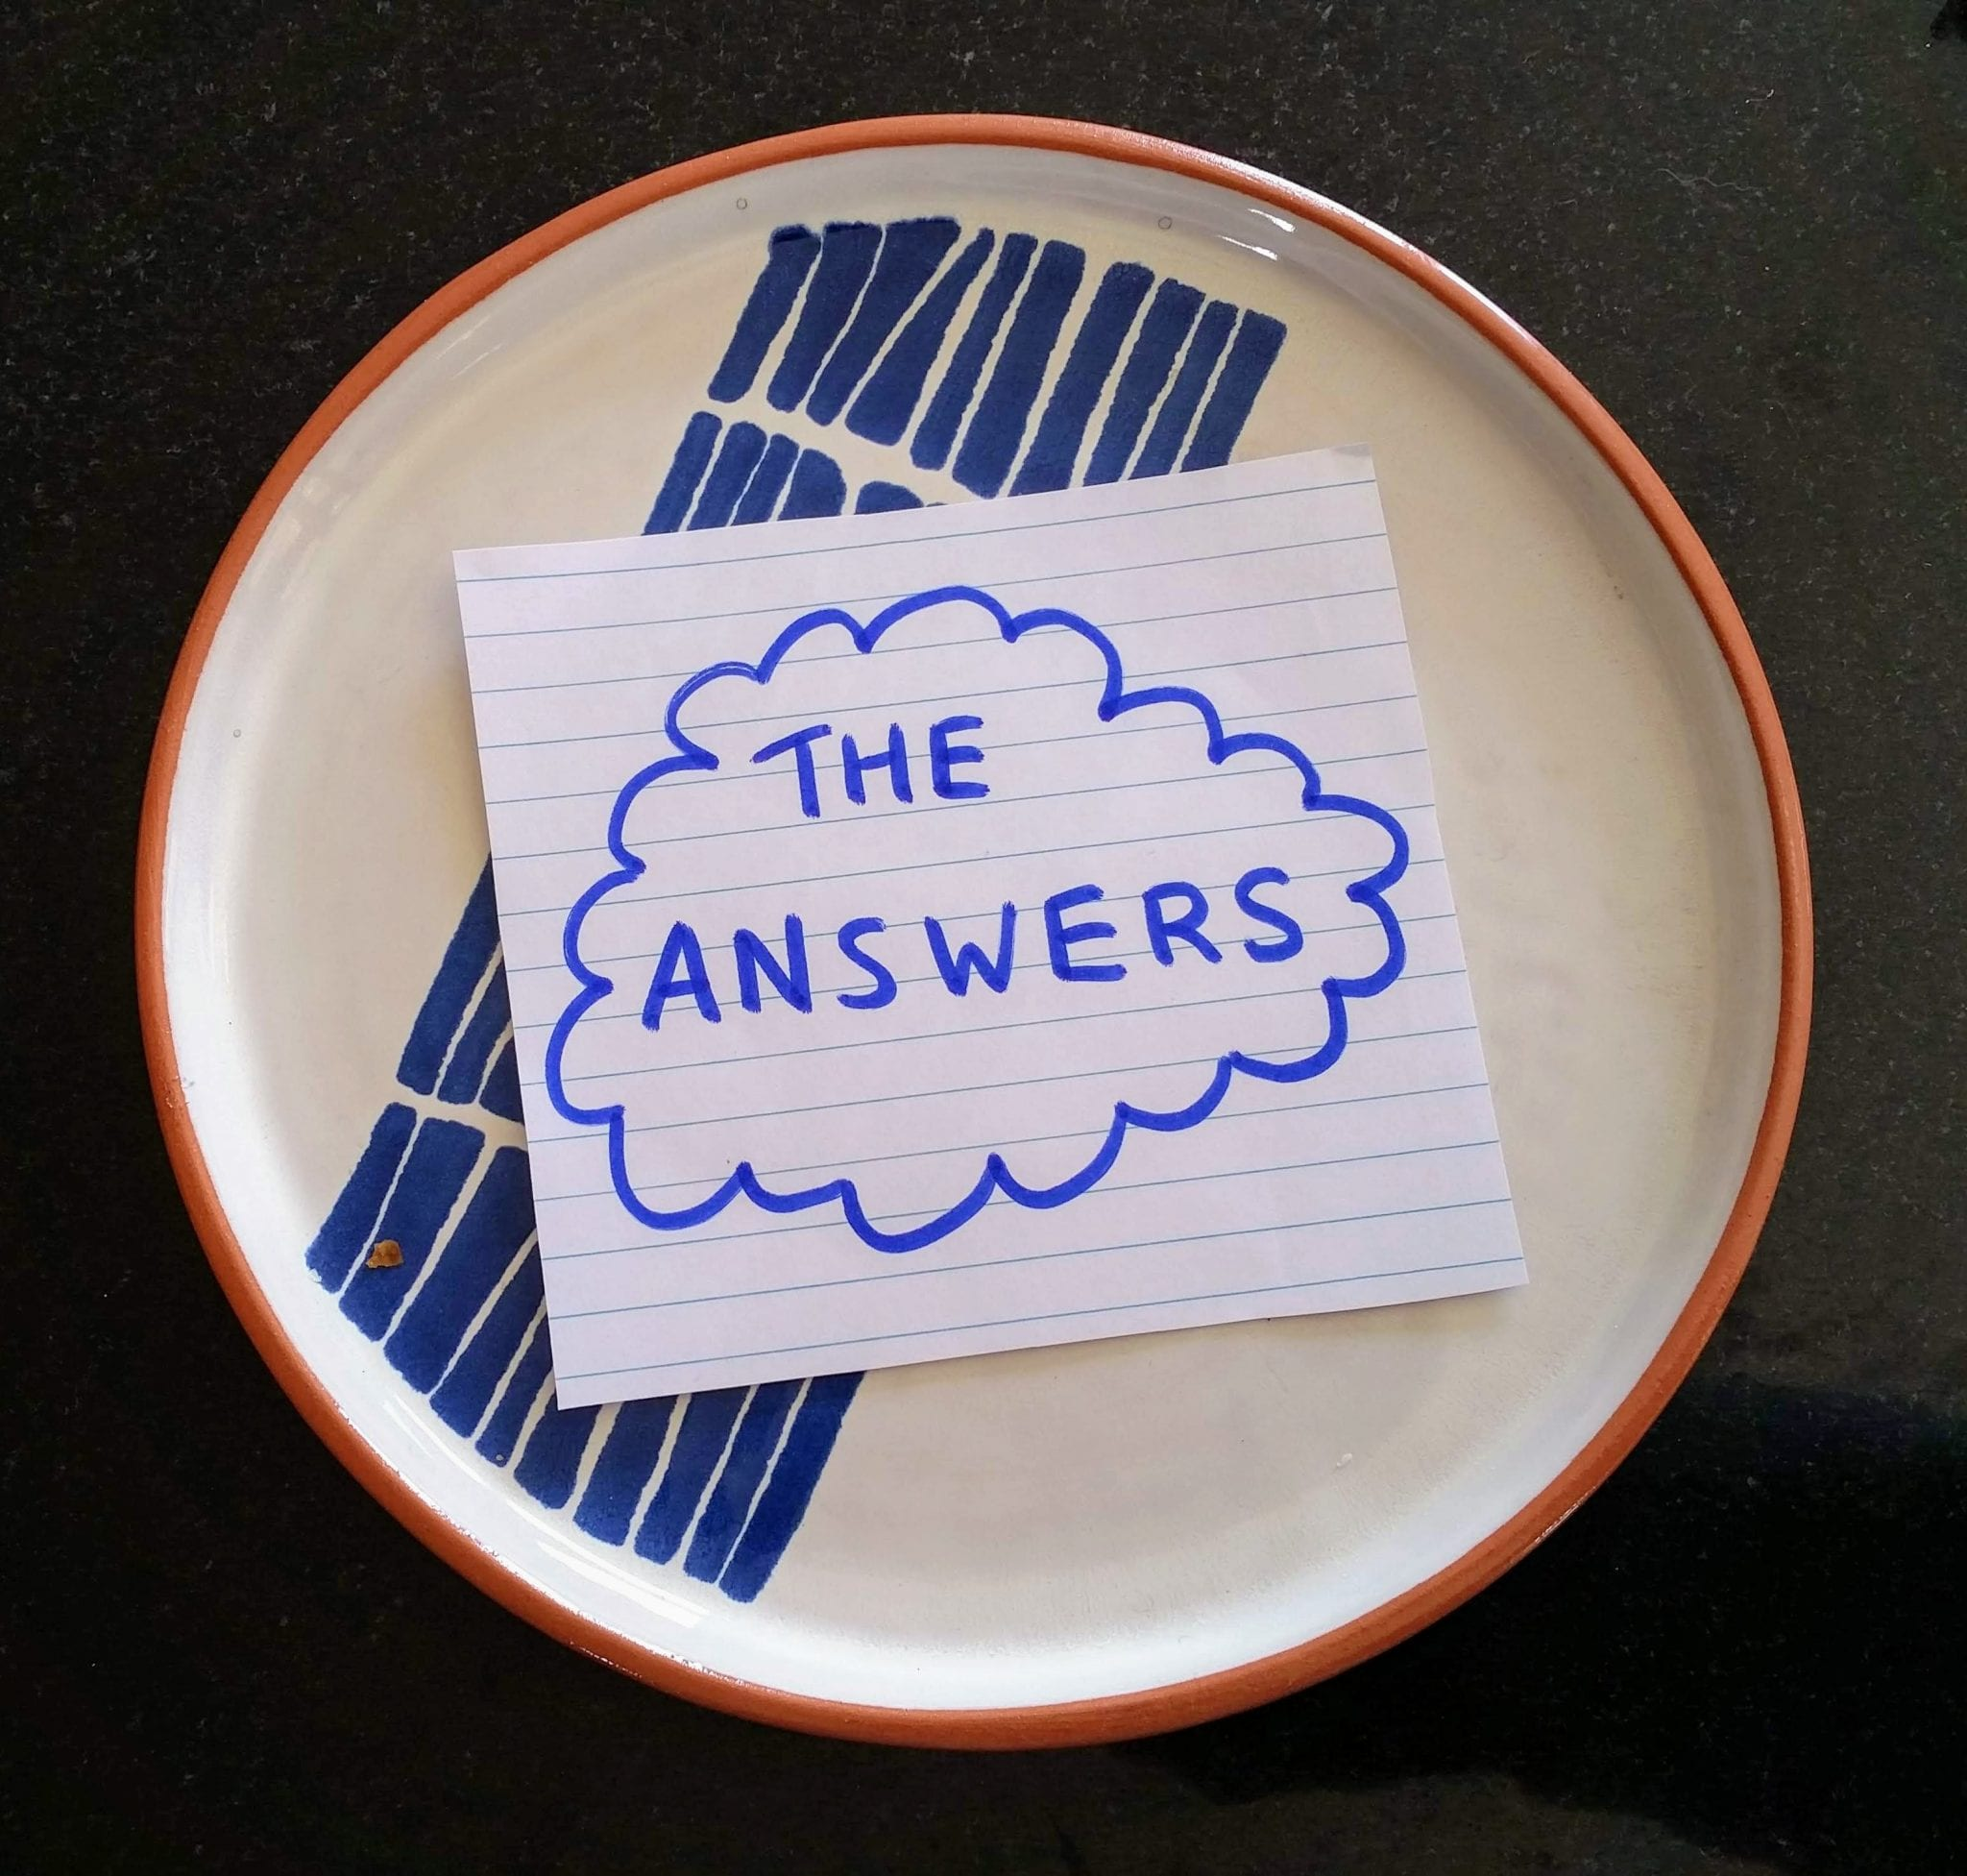 The words 'The Answers' on piece of paper on plate